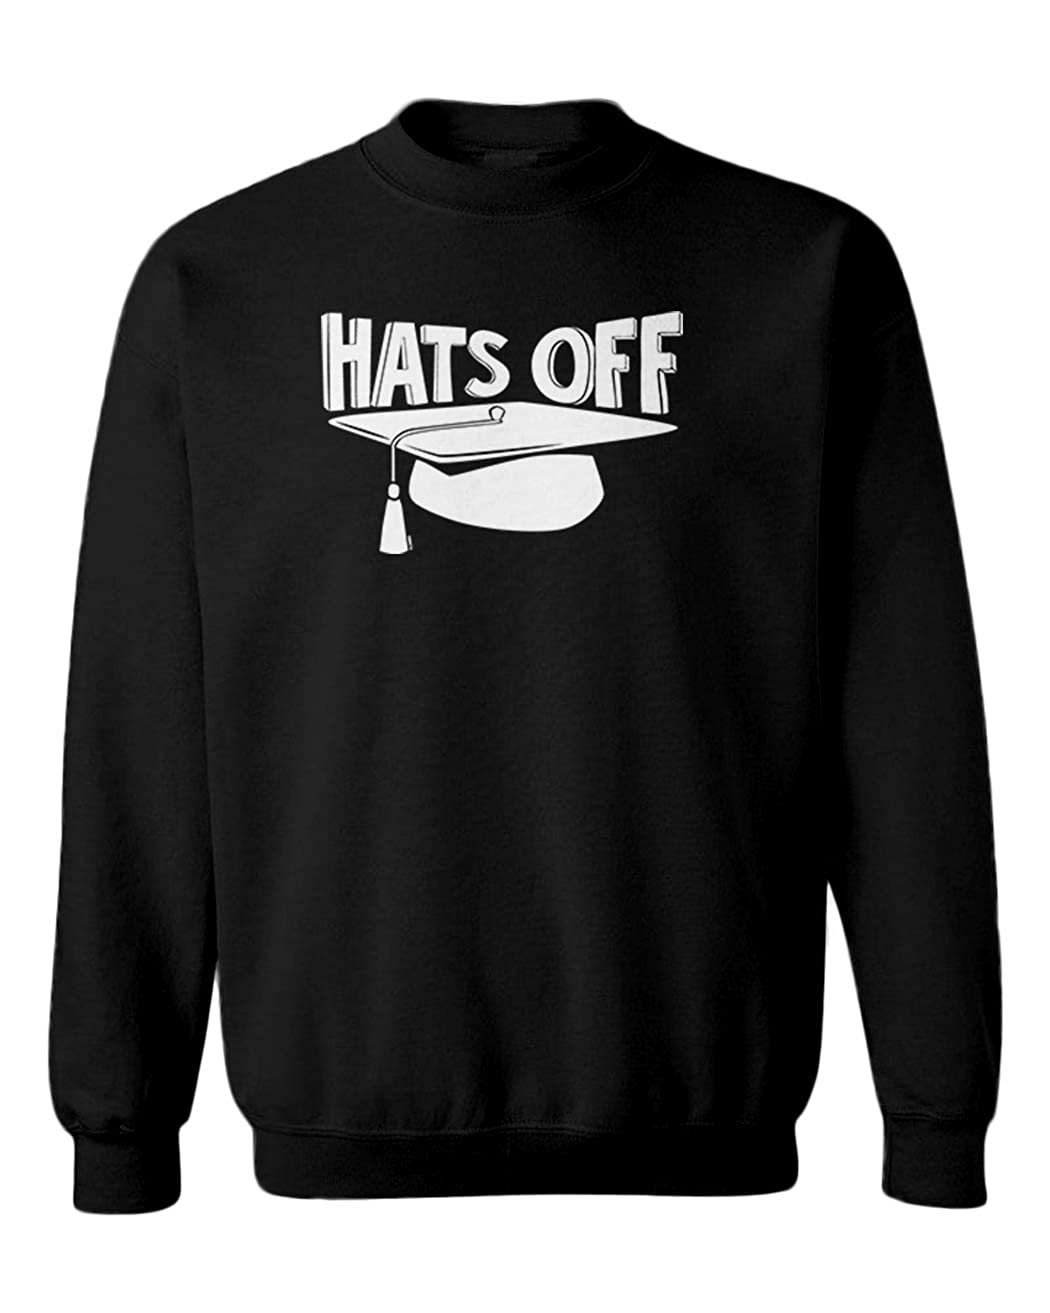 Graduation Cap /& Gown Youth Fleece Crewneck Sweater Hats Off